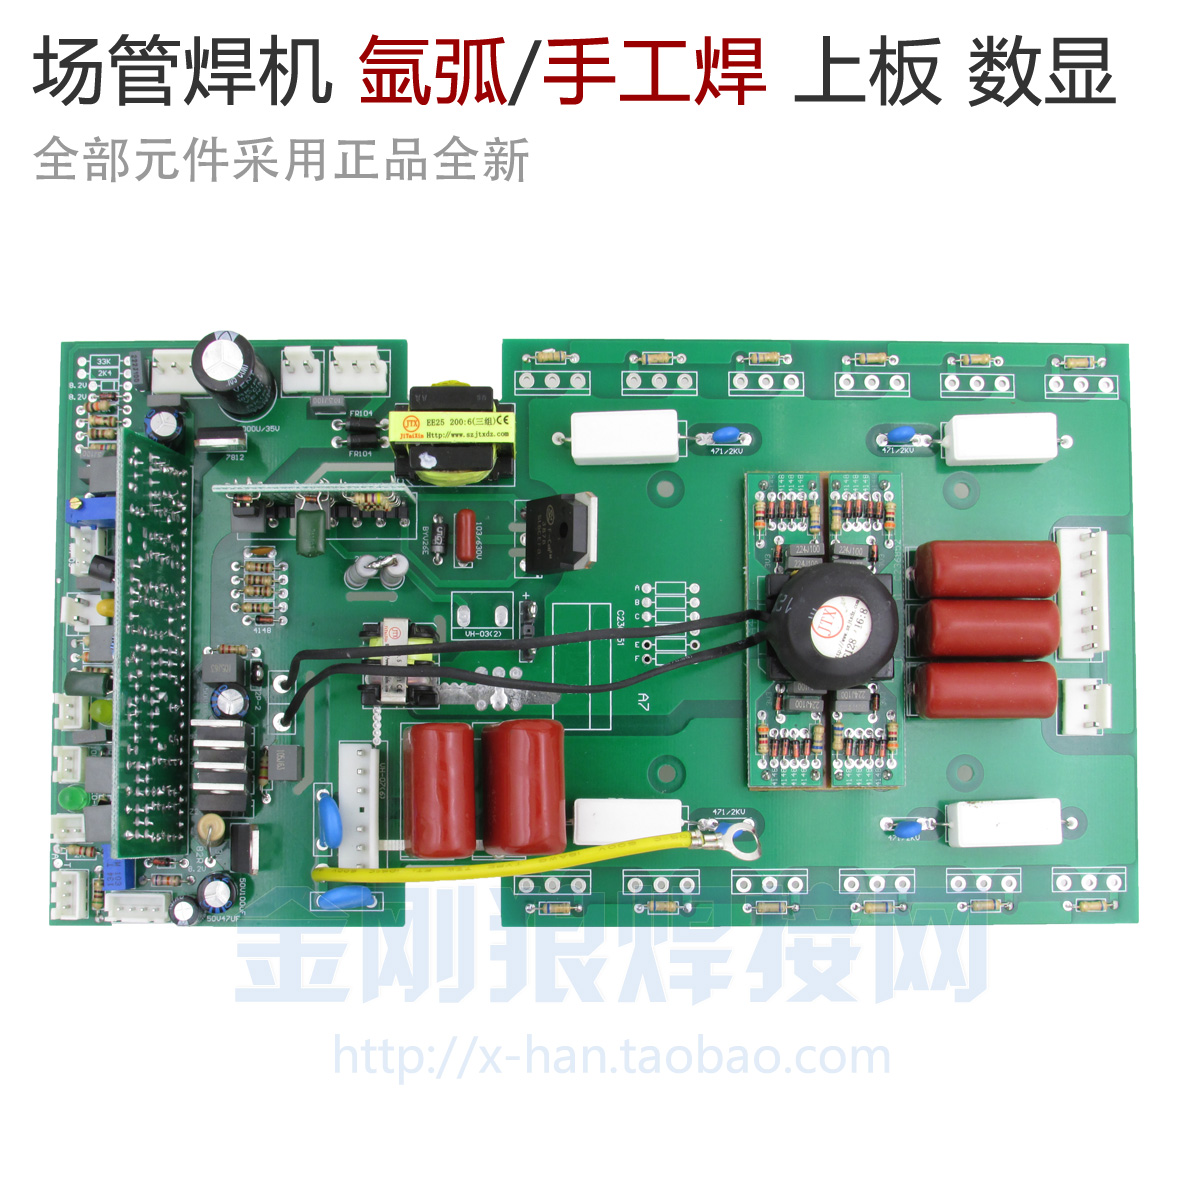 цена на YDT Rexin MOS field Guanshang board Inverter panel with several argon arc welding hand-welding TIG WS 200